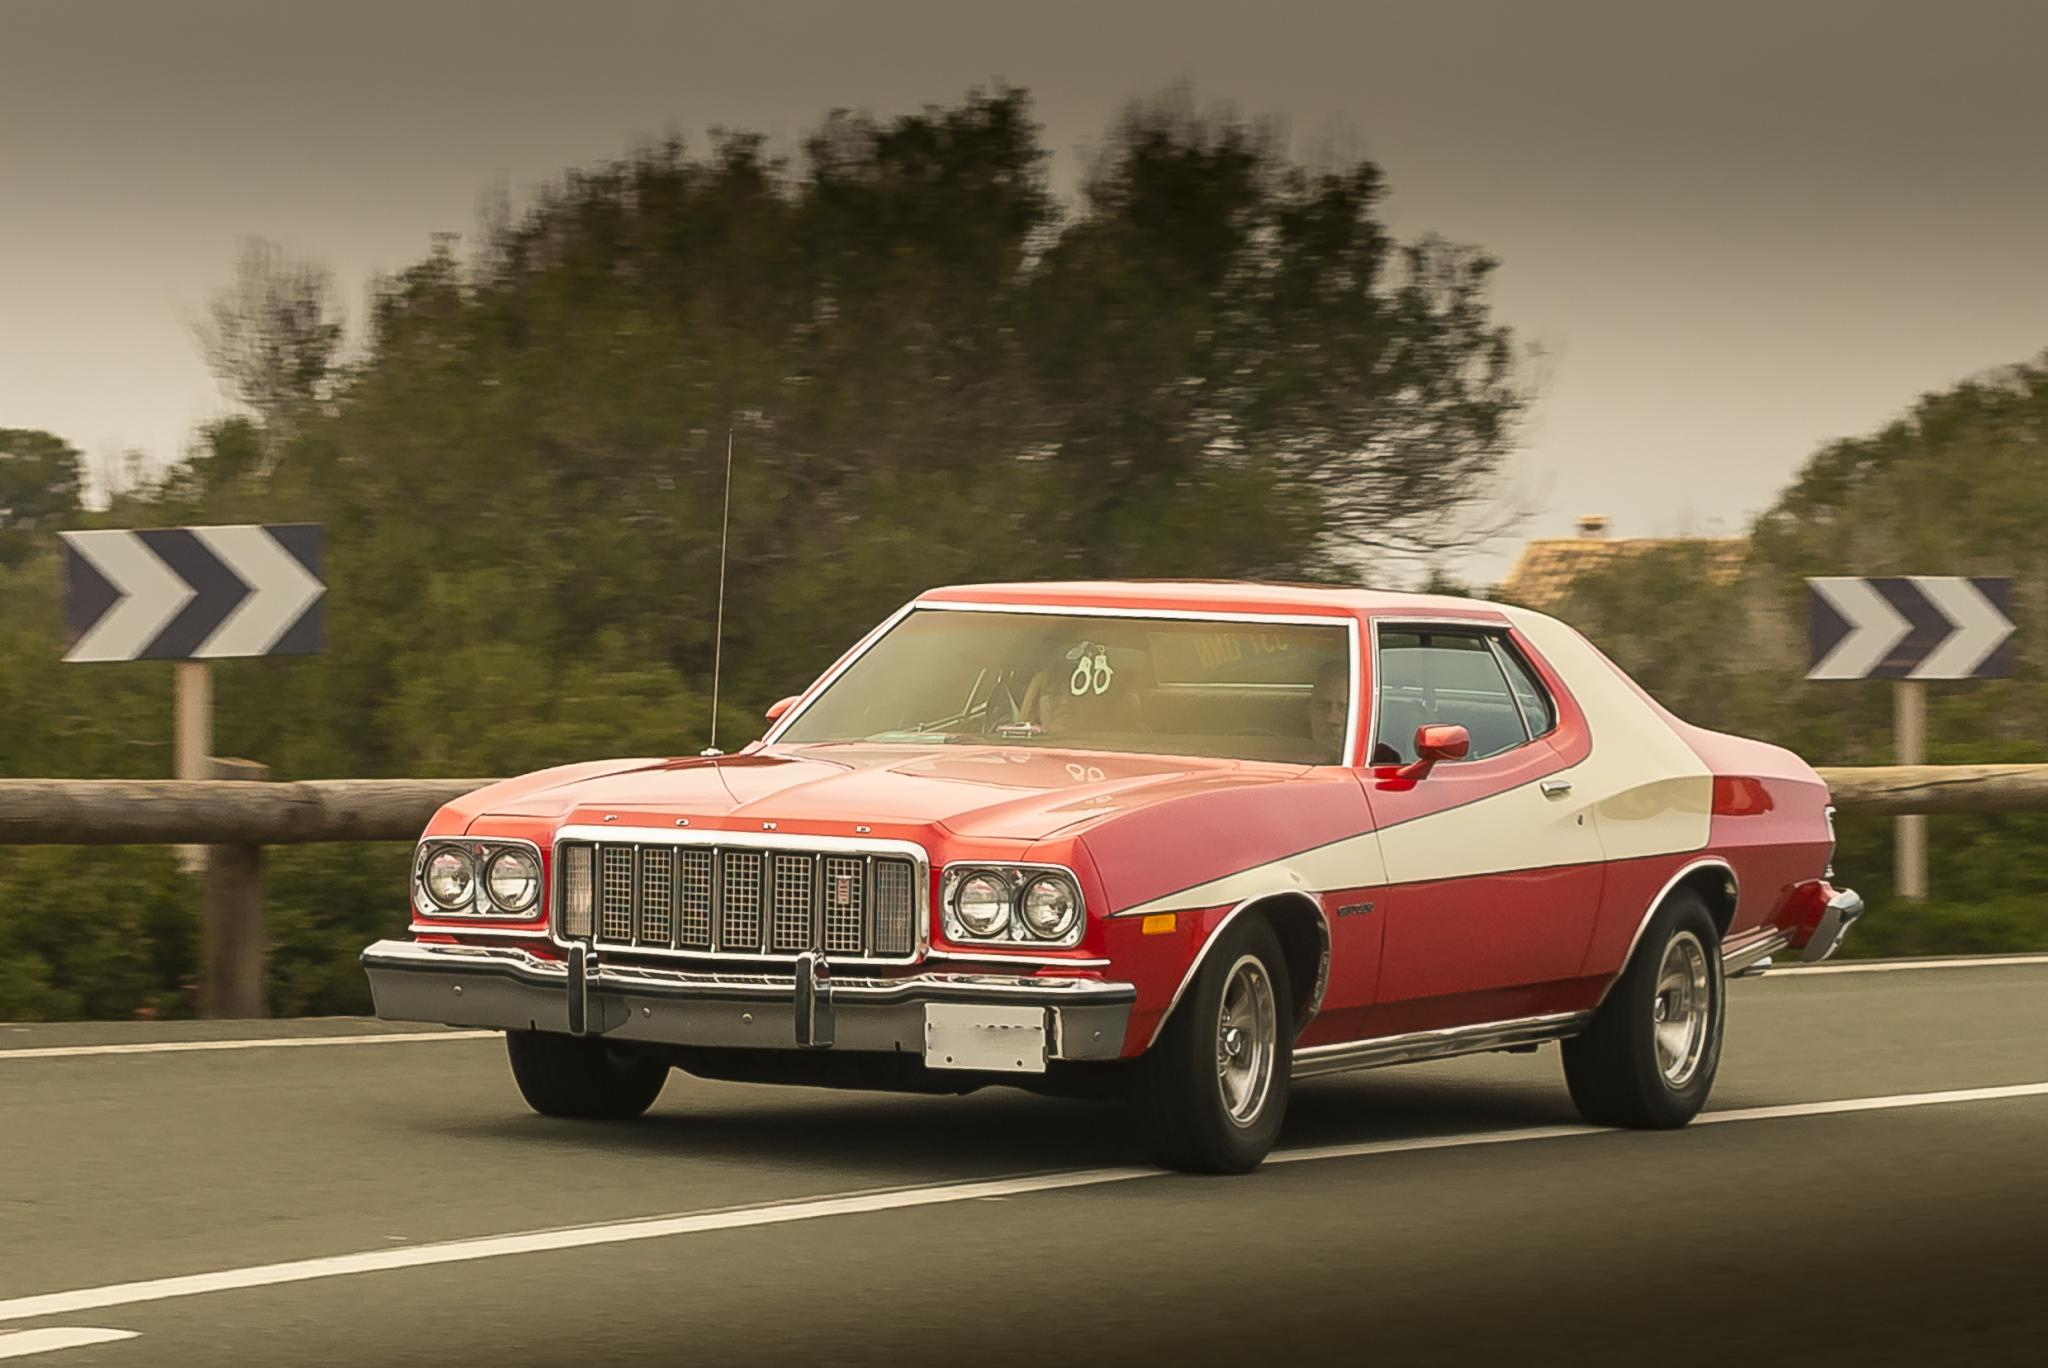 With so many presents to deliver, Starski & Hutch are sometimes roped in. Ford Torino in a hurry